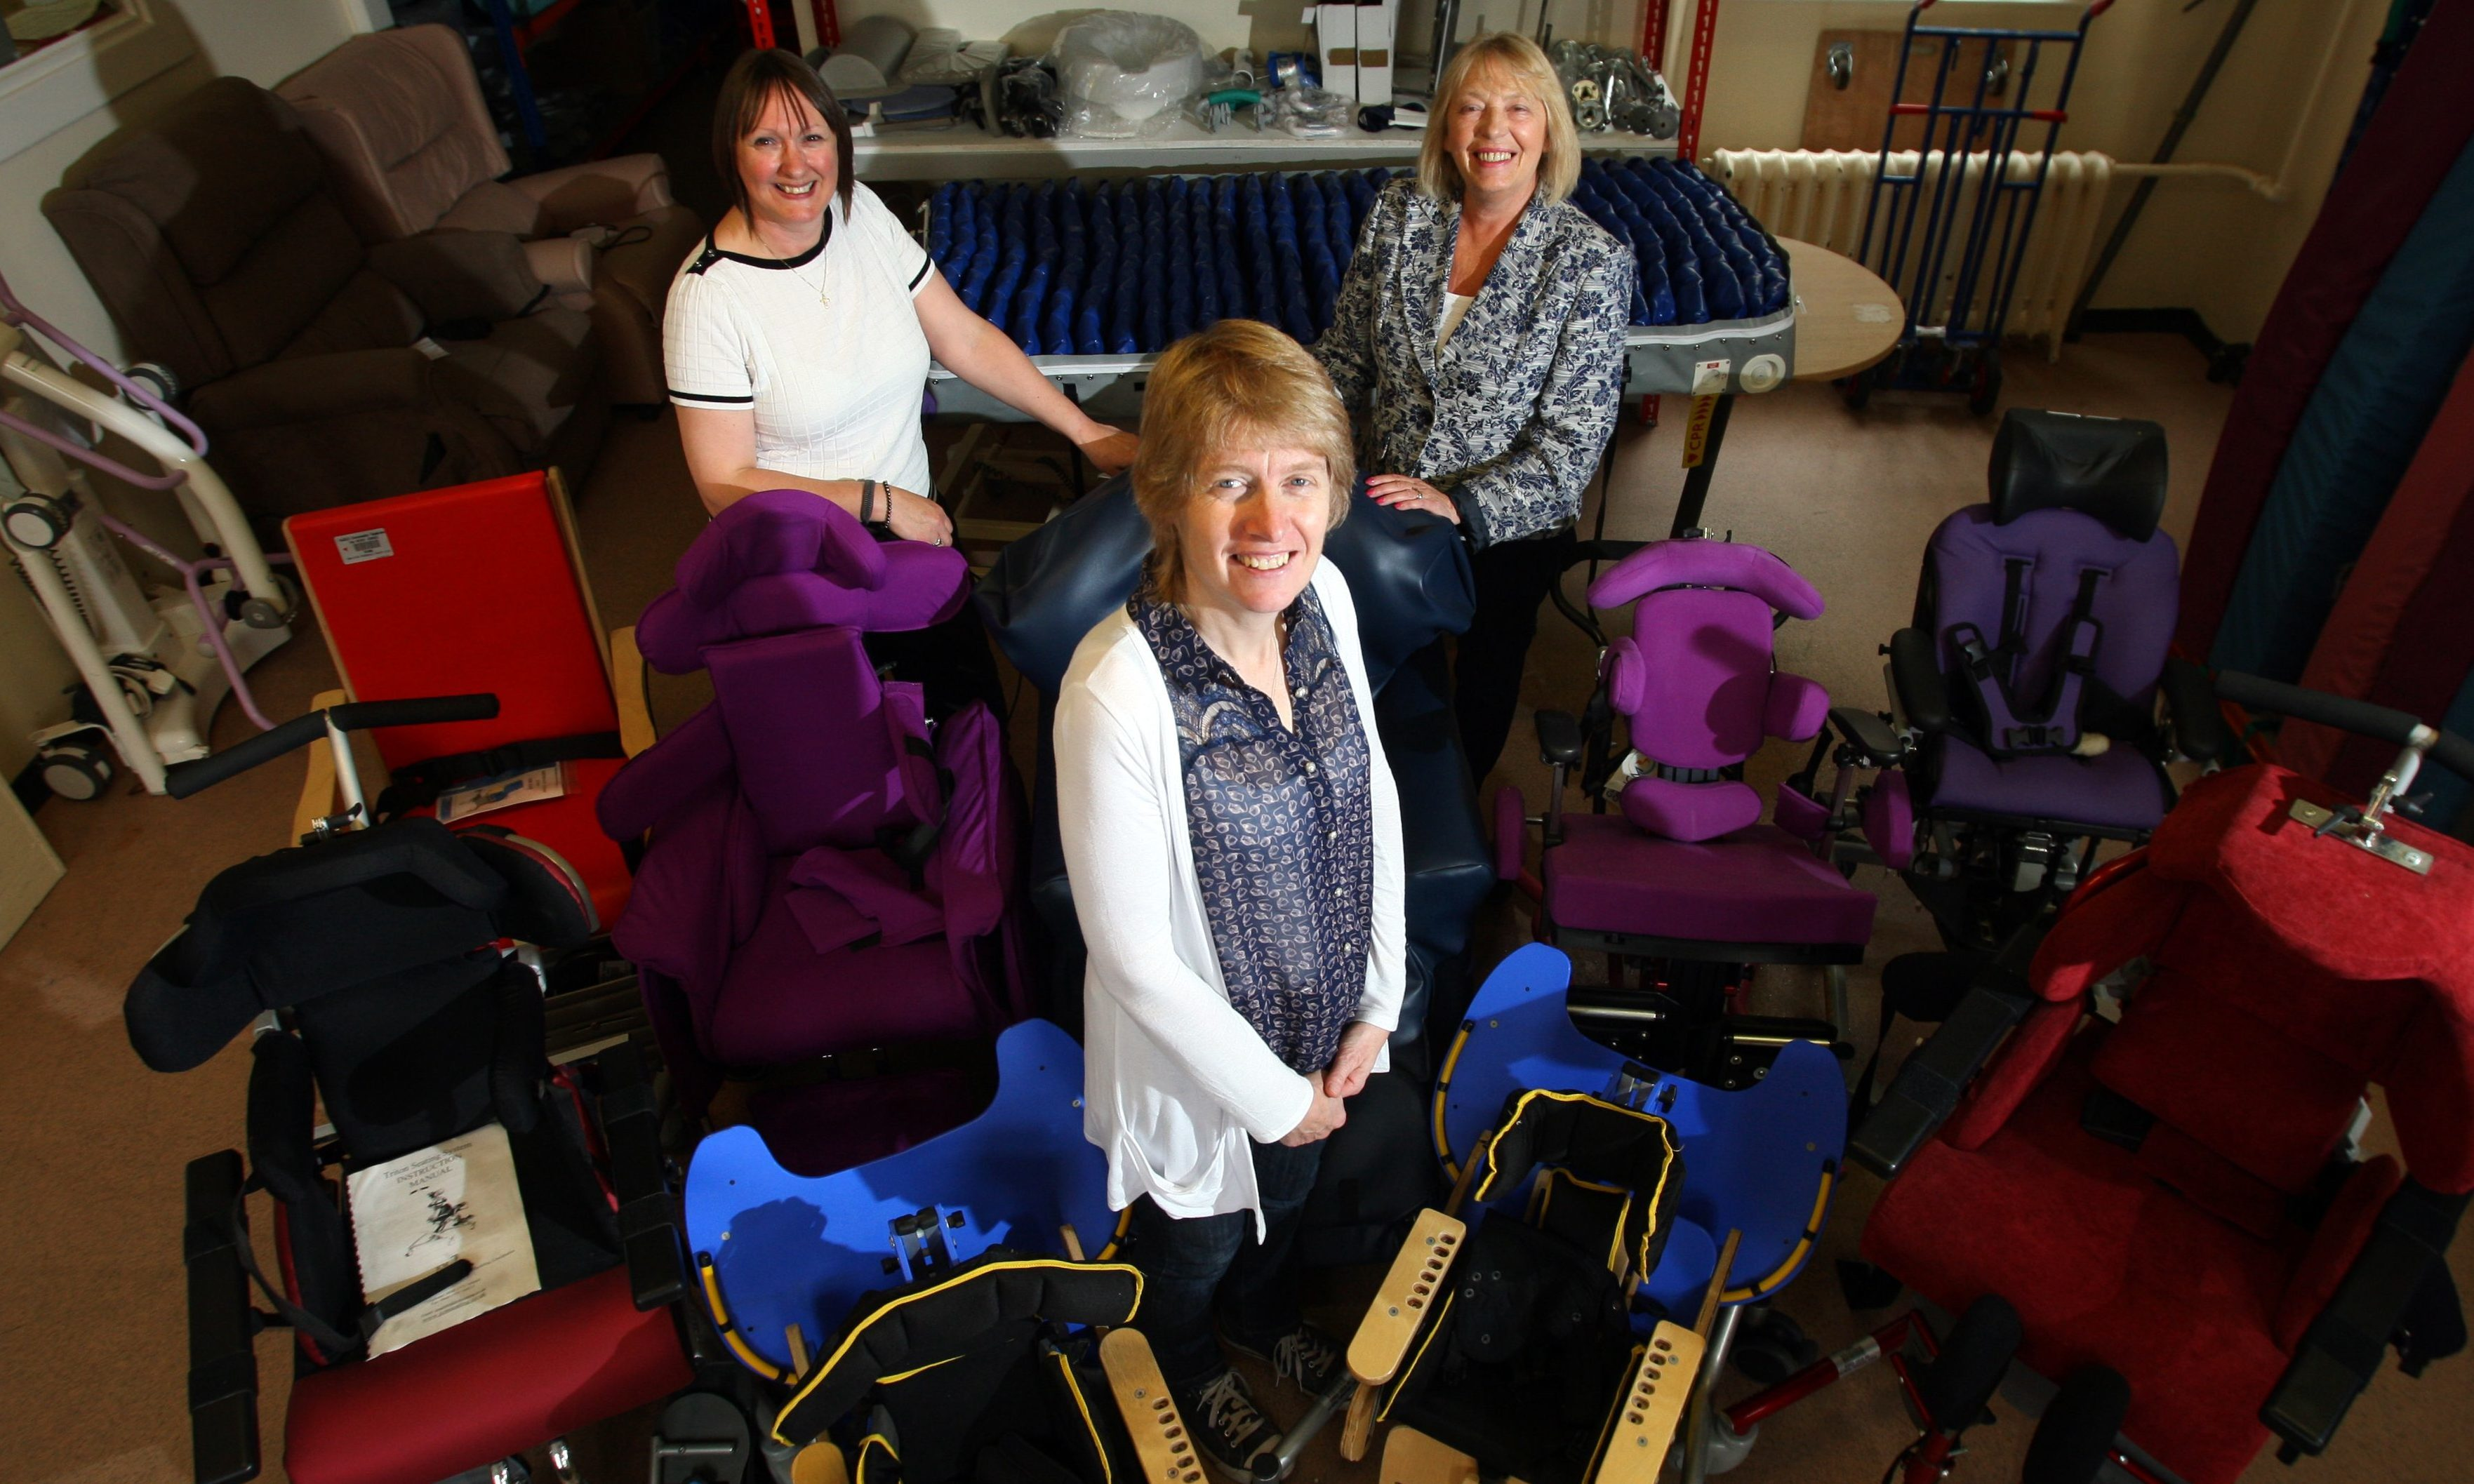 Specialist paediatric chairs being donated to Malawi last year as part of the St Andrews Church Malawi Project.